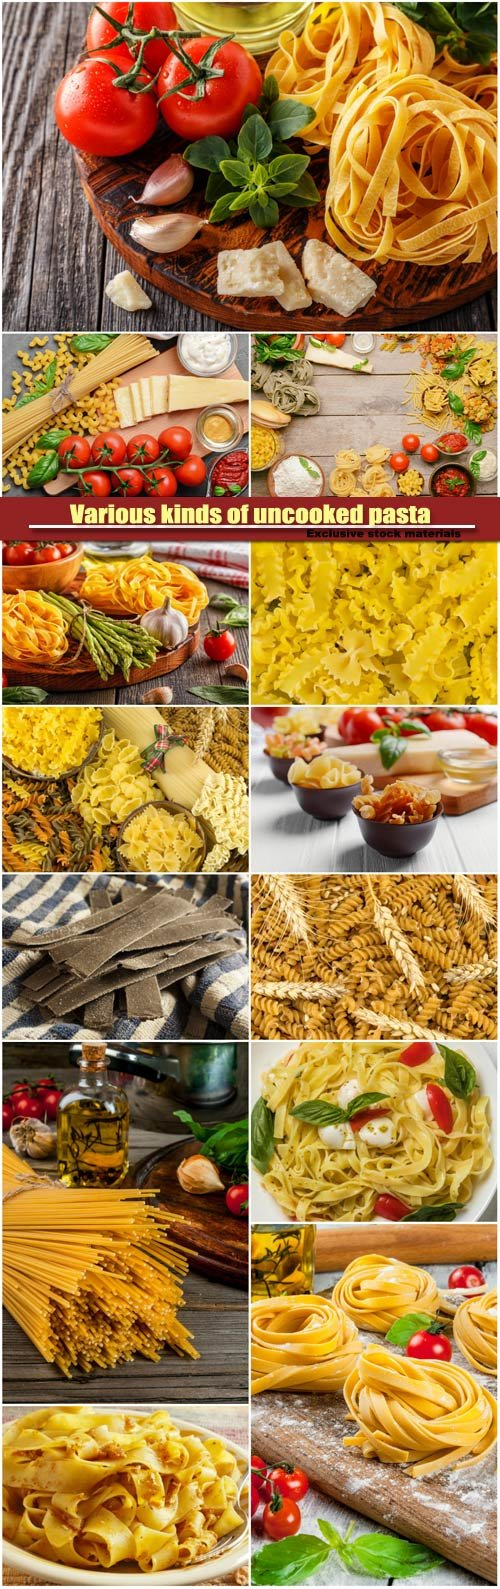 Various kinds of uncooked pasta